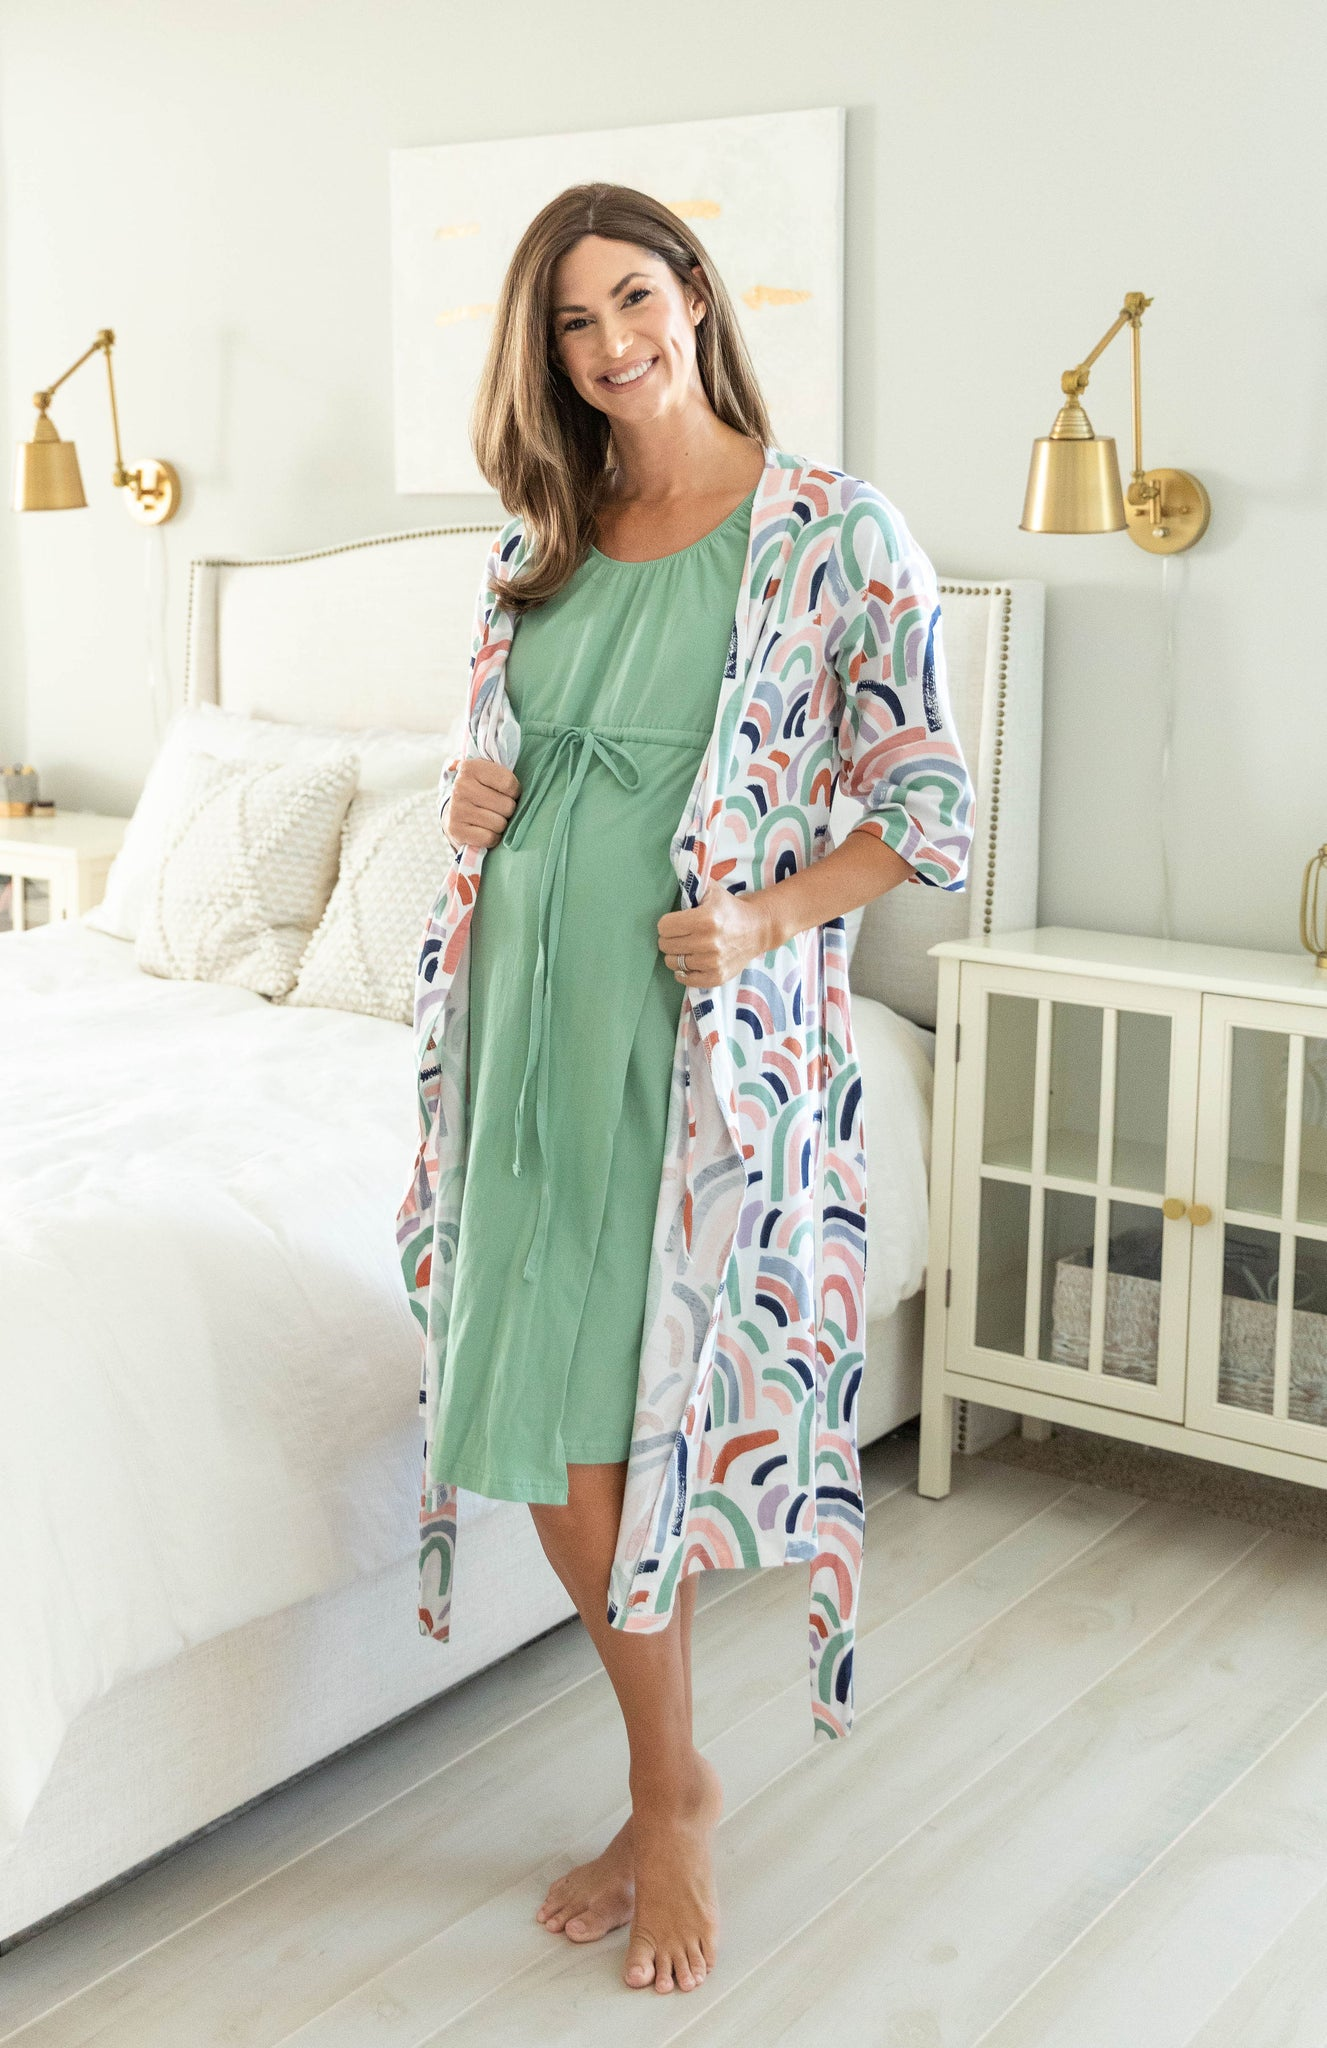 Rainbow Robe & Sage Labor Gown